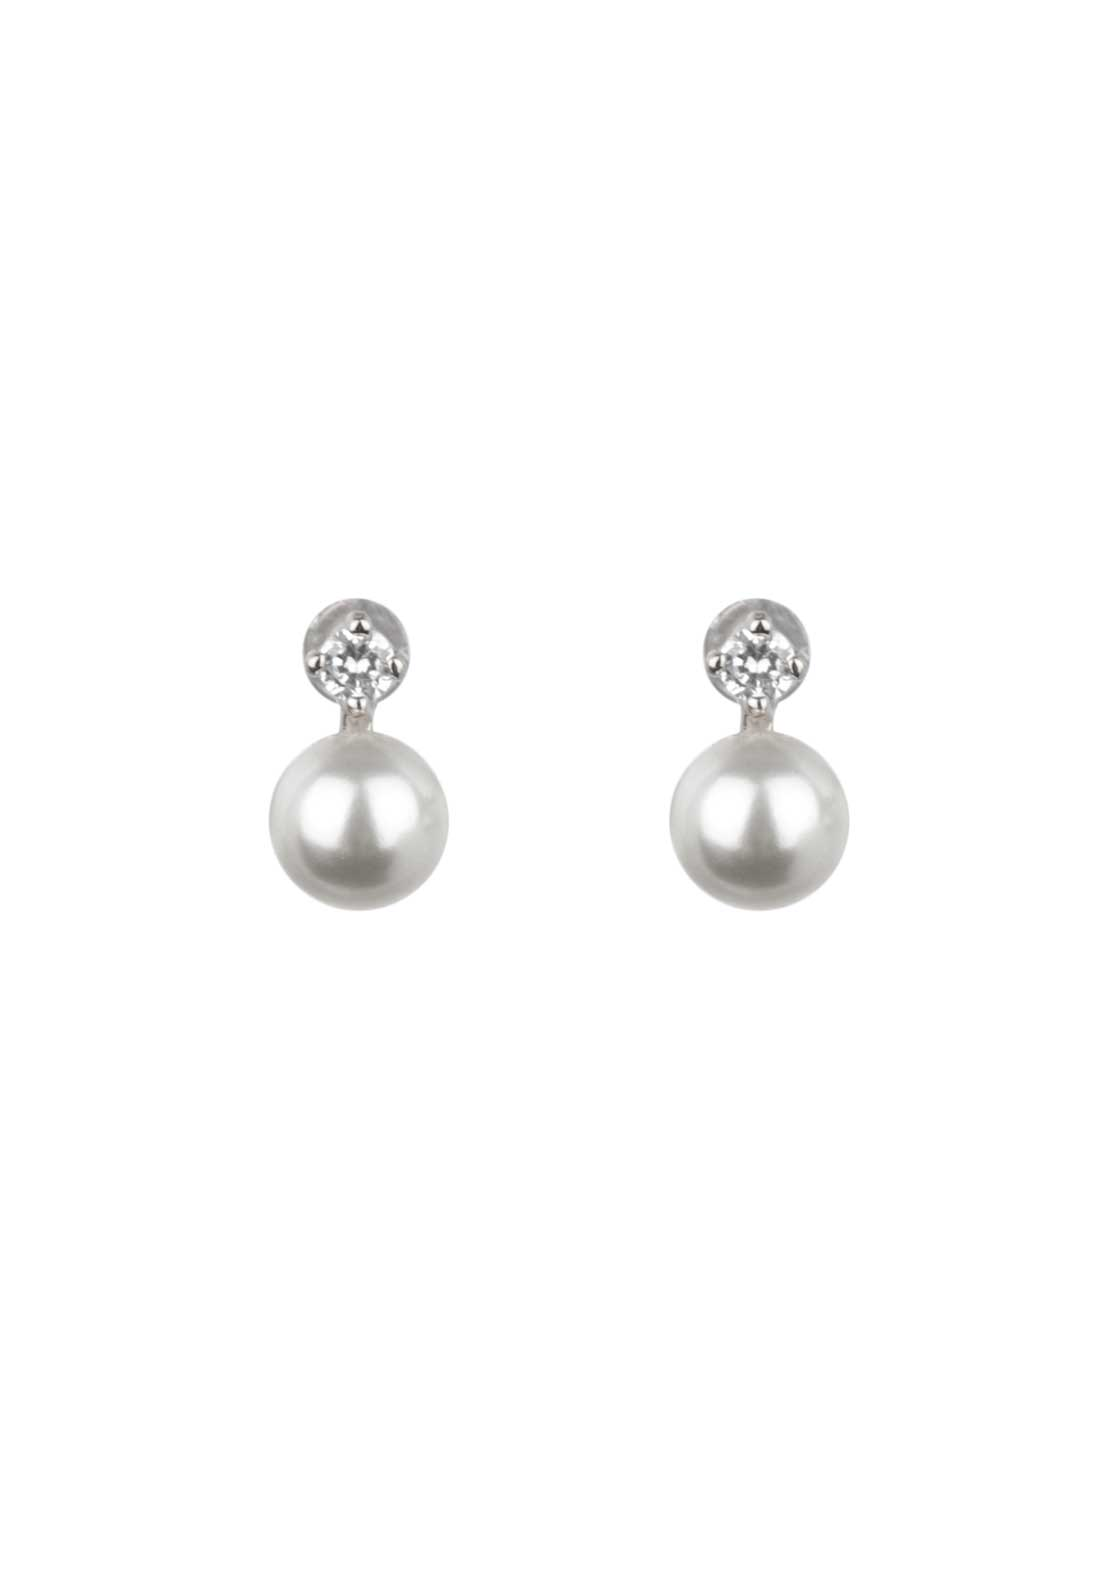 Absolute Jewellery Girls Small Pearl and Pave Stud Earrings, Silver